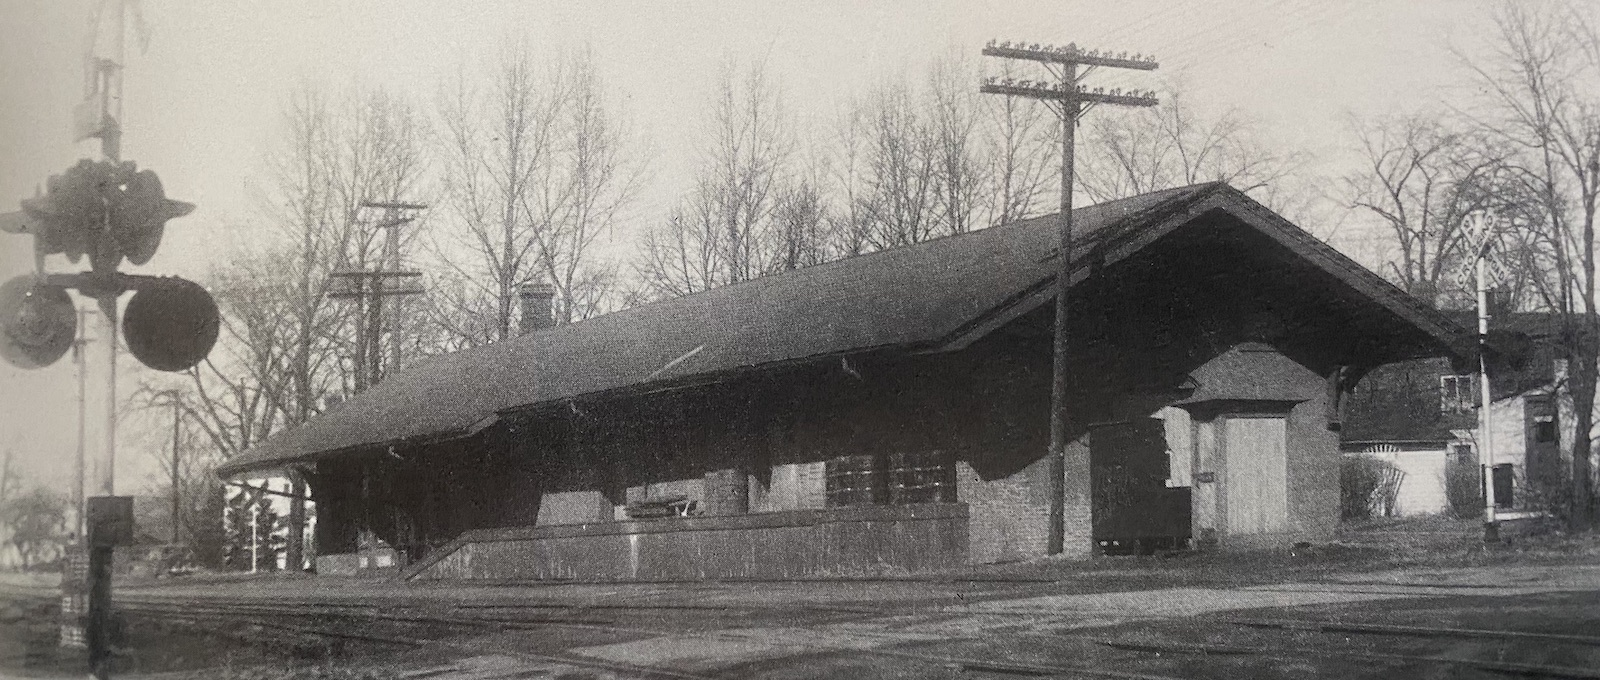 Horseheads Station 1950s